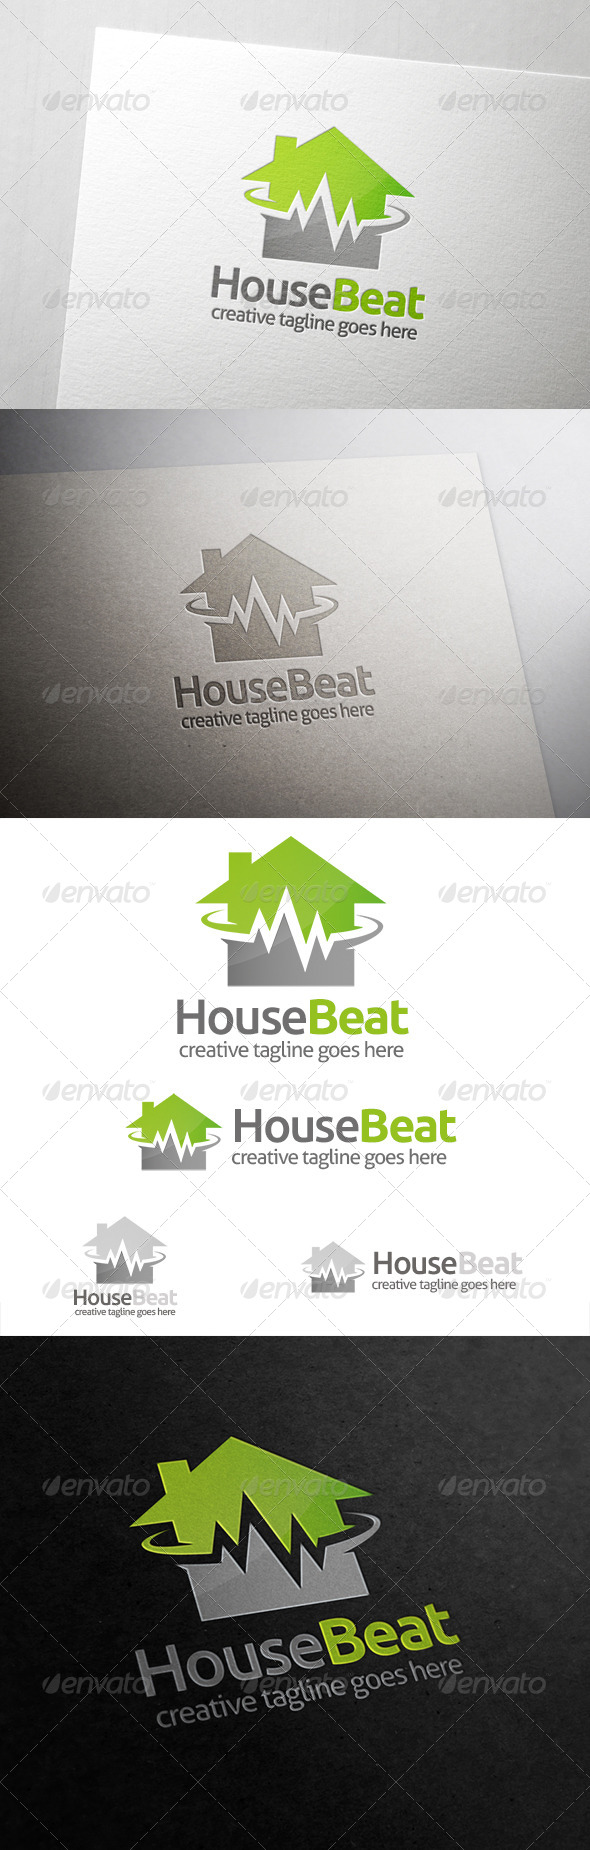 House Beat Logo - Buildings Logo Templates